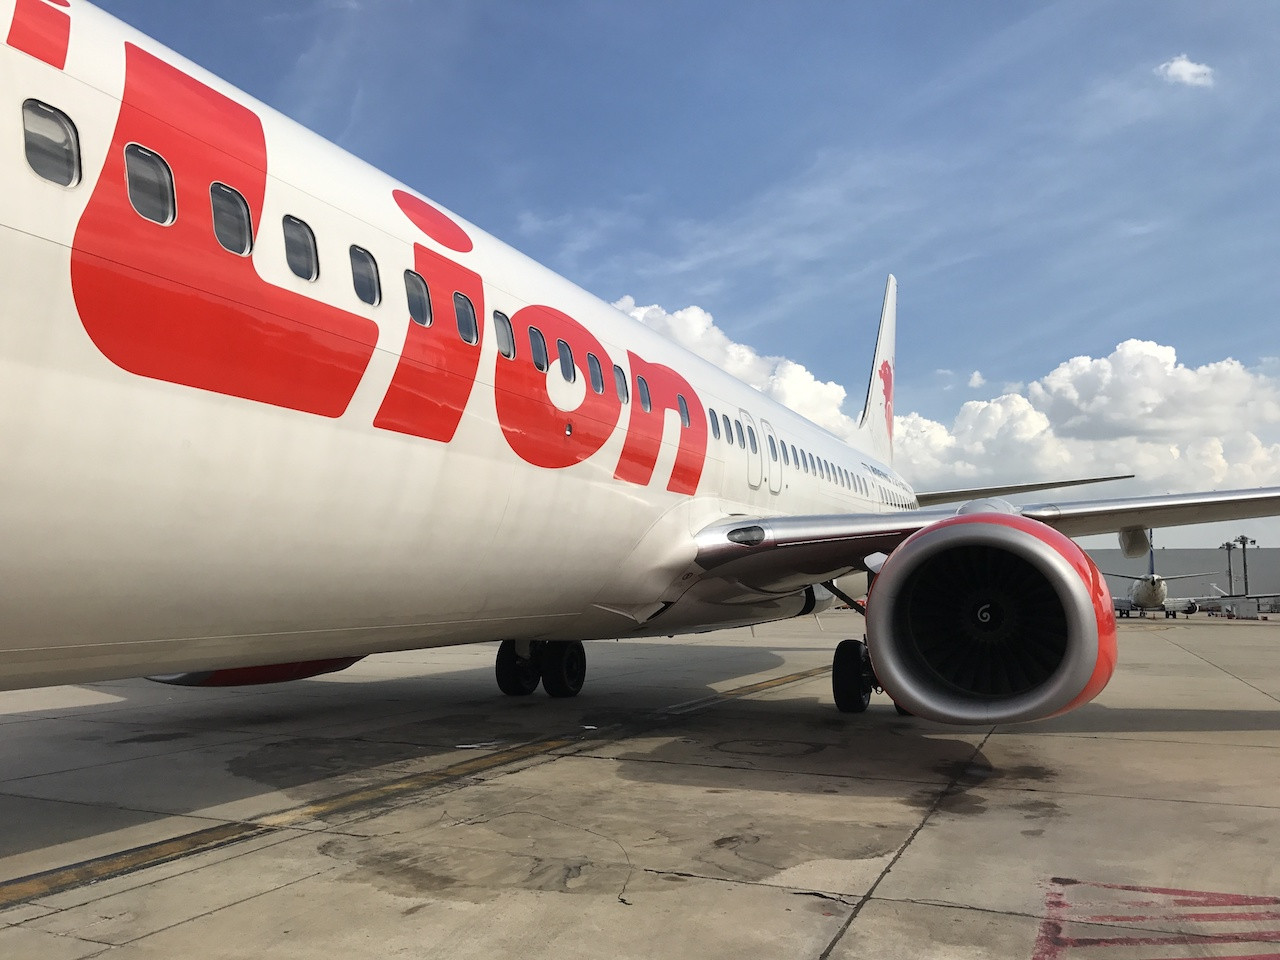 Lion Air confirms passenger named 'Jin' among 188 on Wuhan-Bali flight